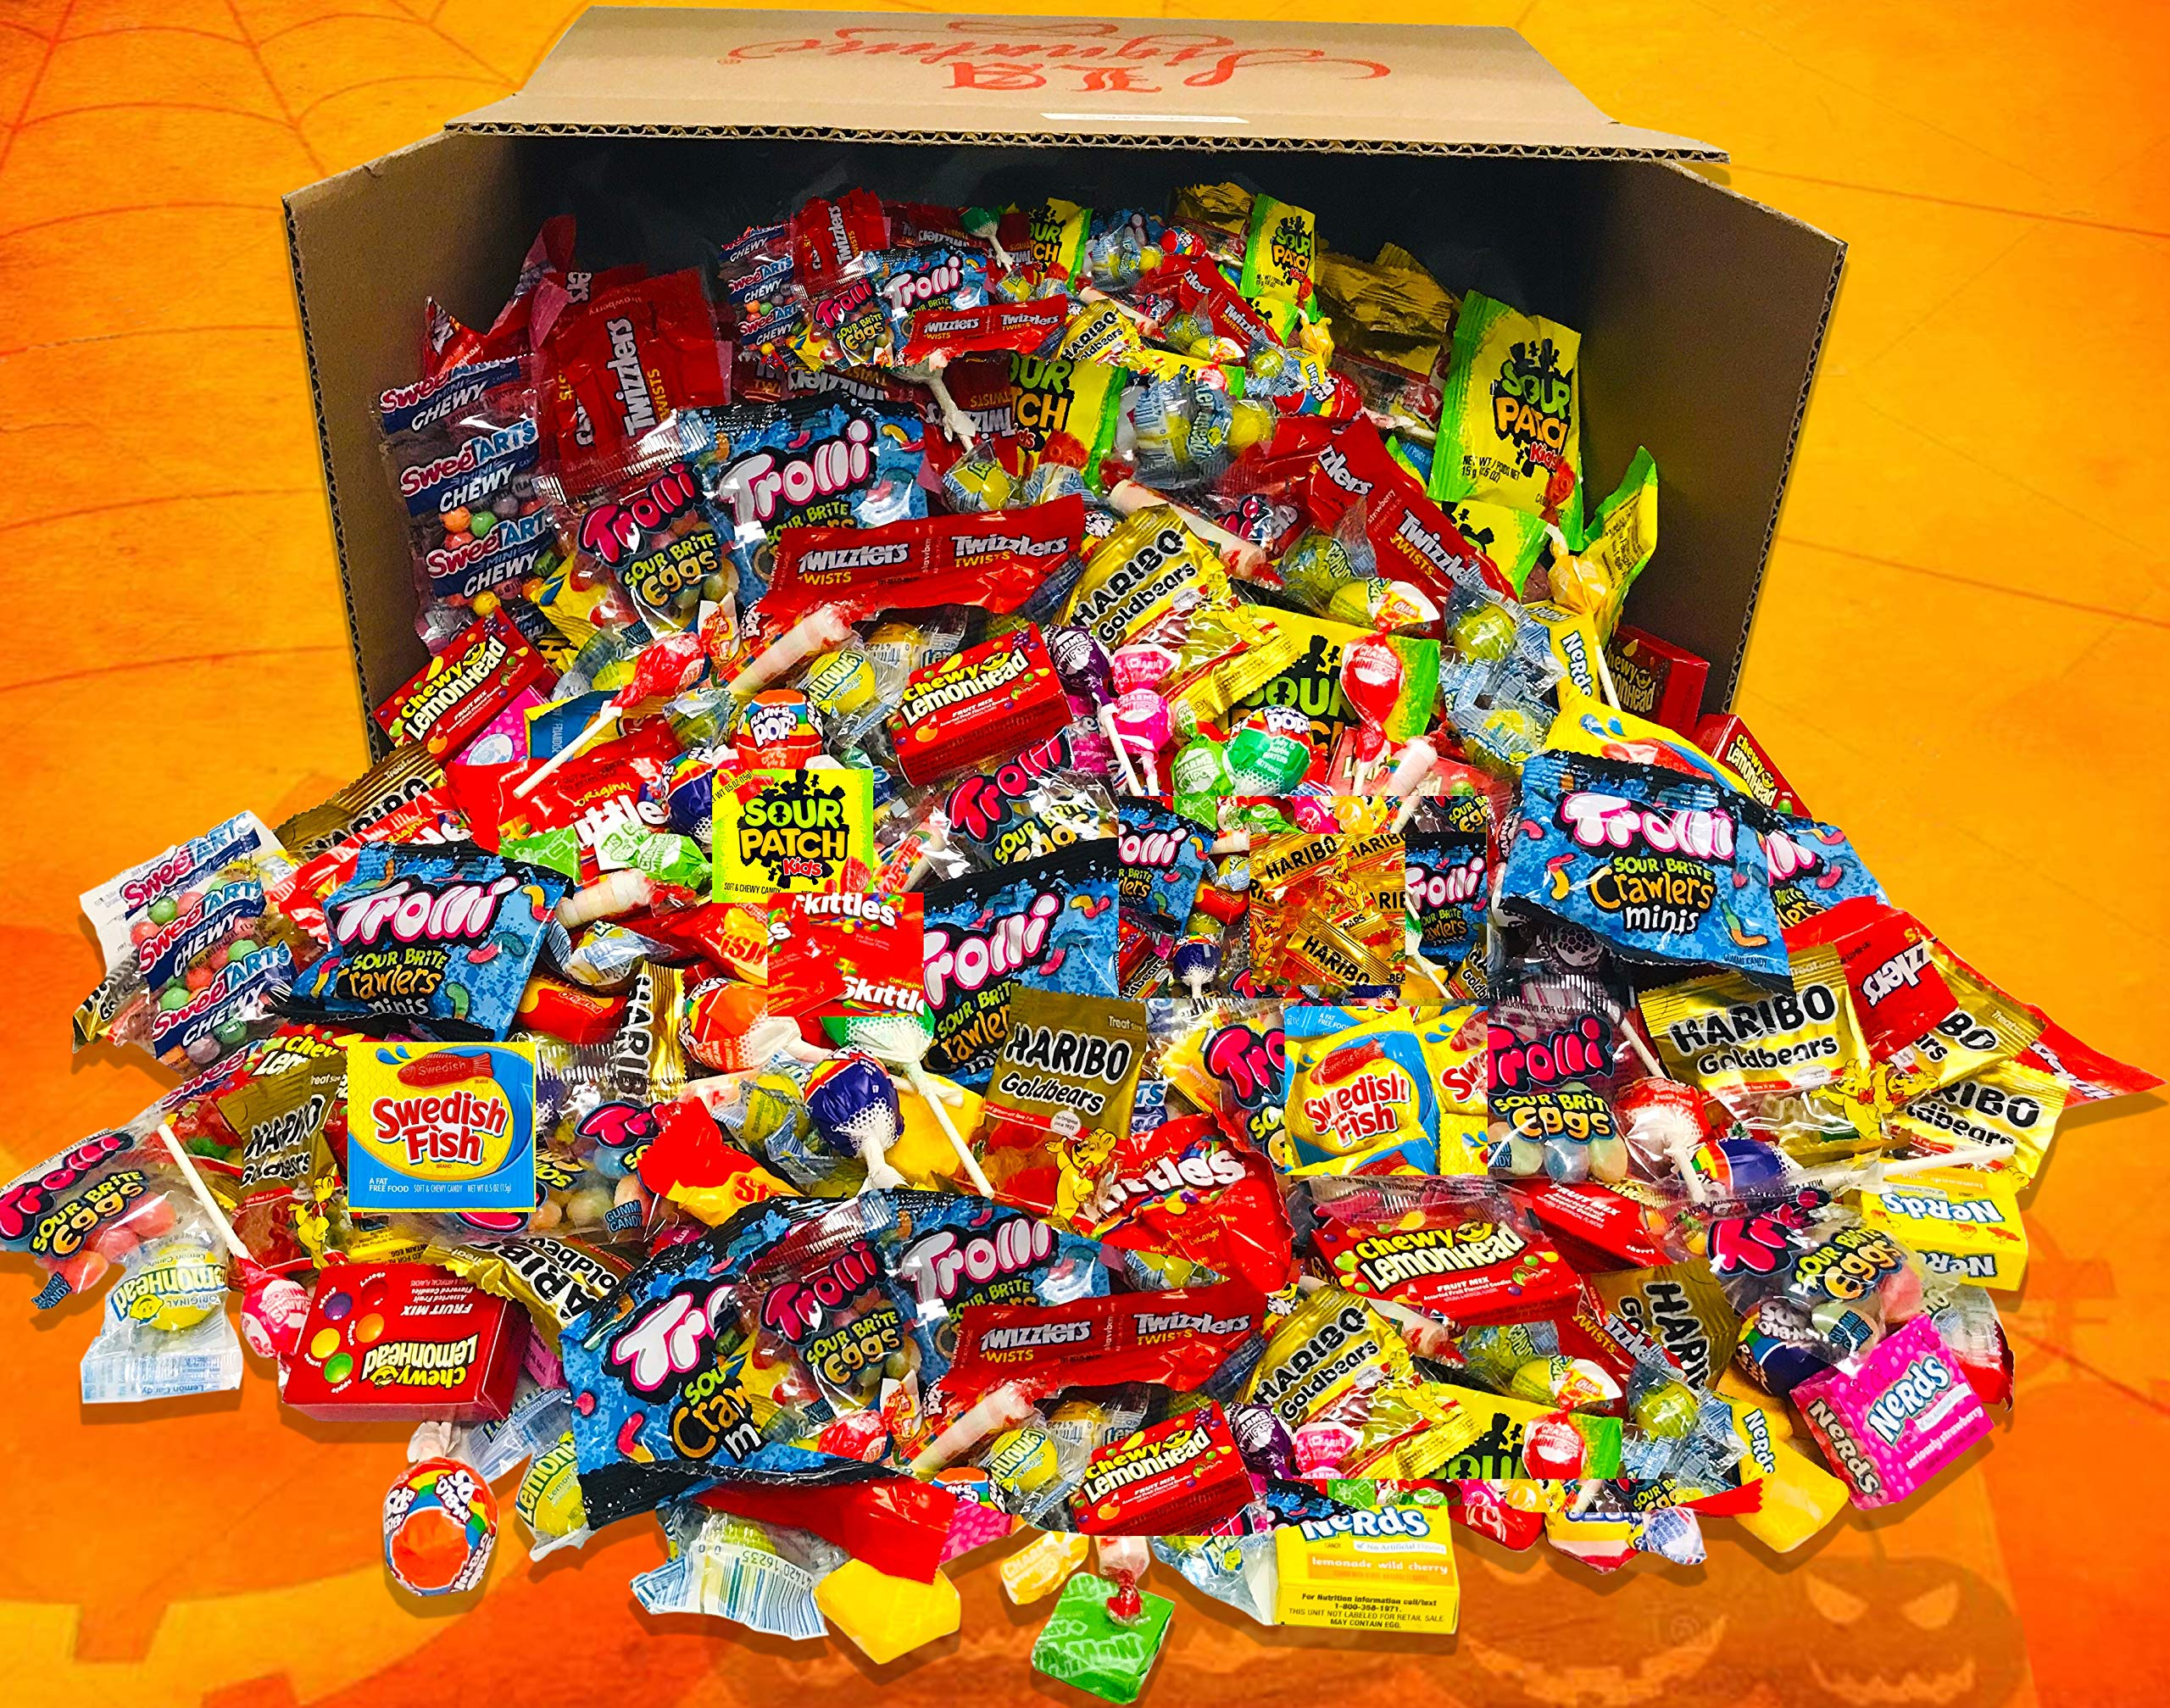 HUGE FUN MIX ASSORTED Variety BULK Individually Wrapped Candies Net Weight 12 LBS ( 192 oz) Skittles, Haribo, Sour Patch Kids, Swedish Fish, Starburst, Lemondheads Chewy, Trolli, Now & Later by LA Signature